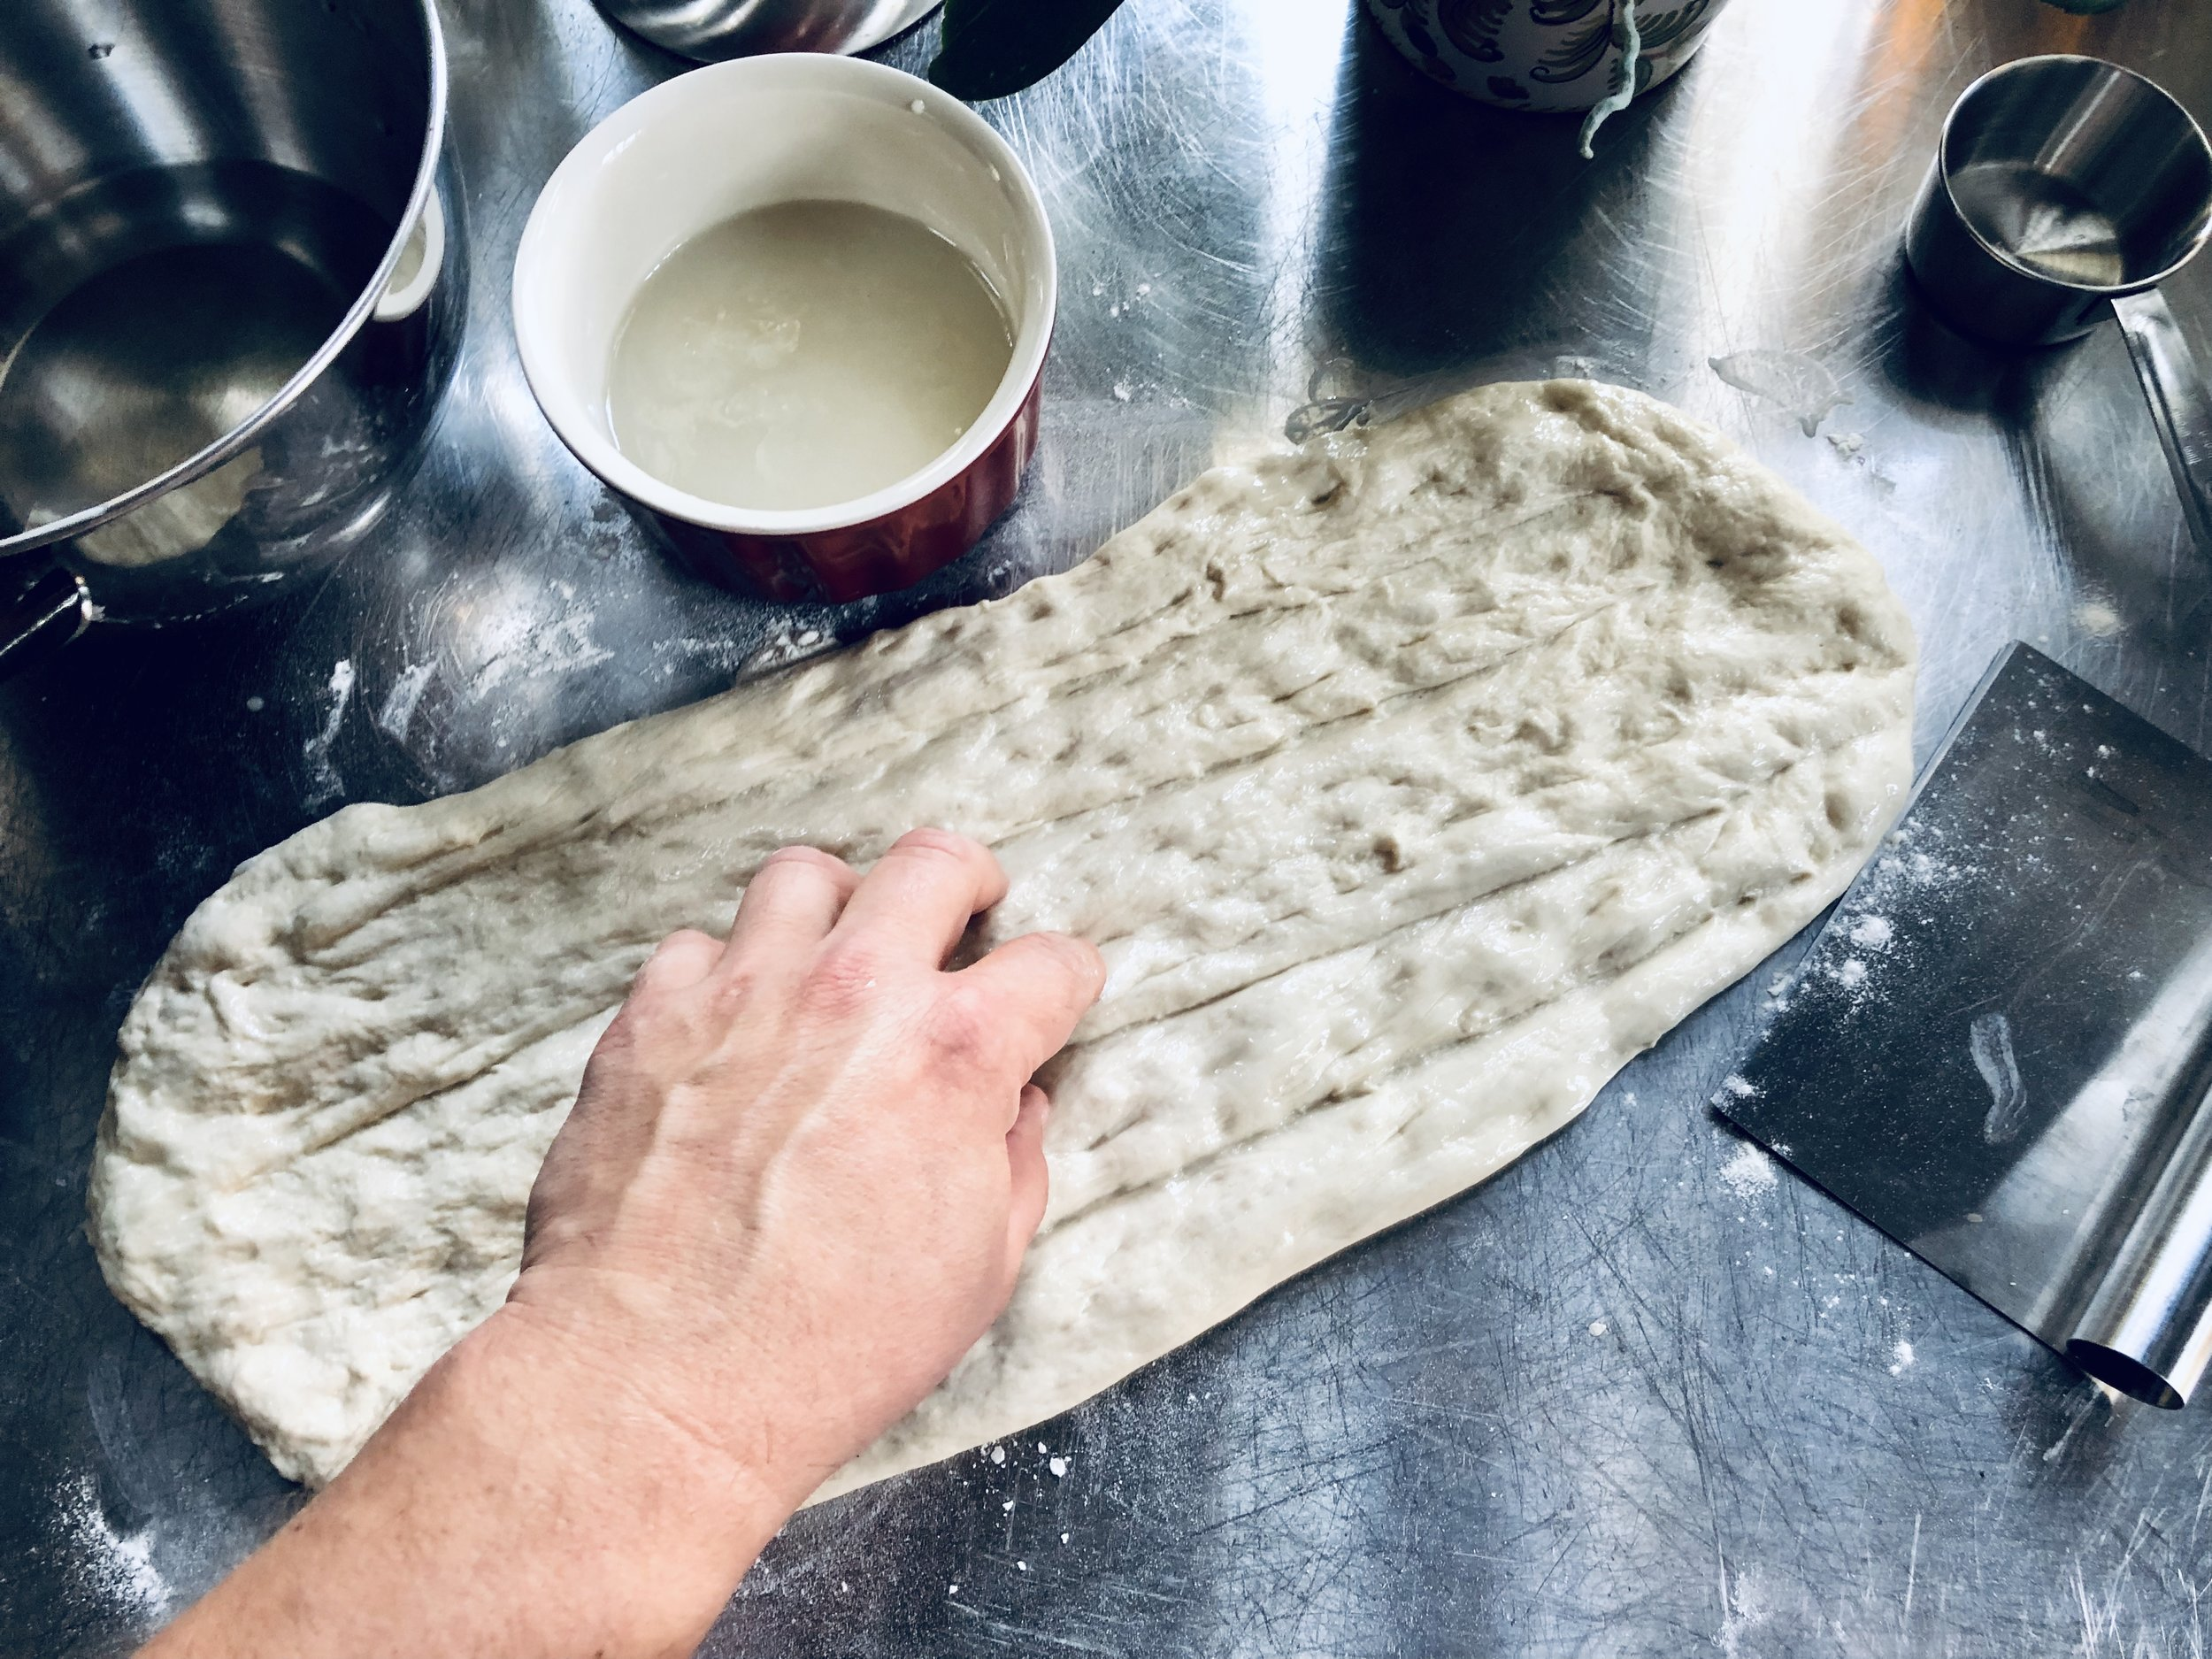 Your hands and fingers are the best tools when making barbari bread!